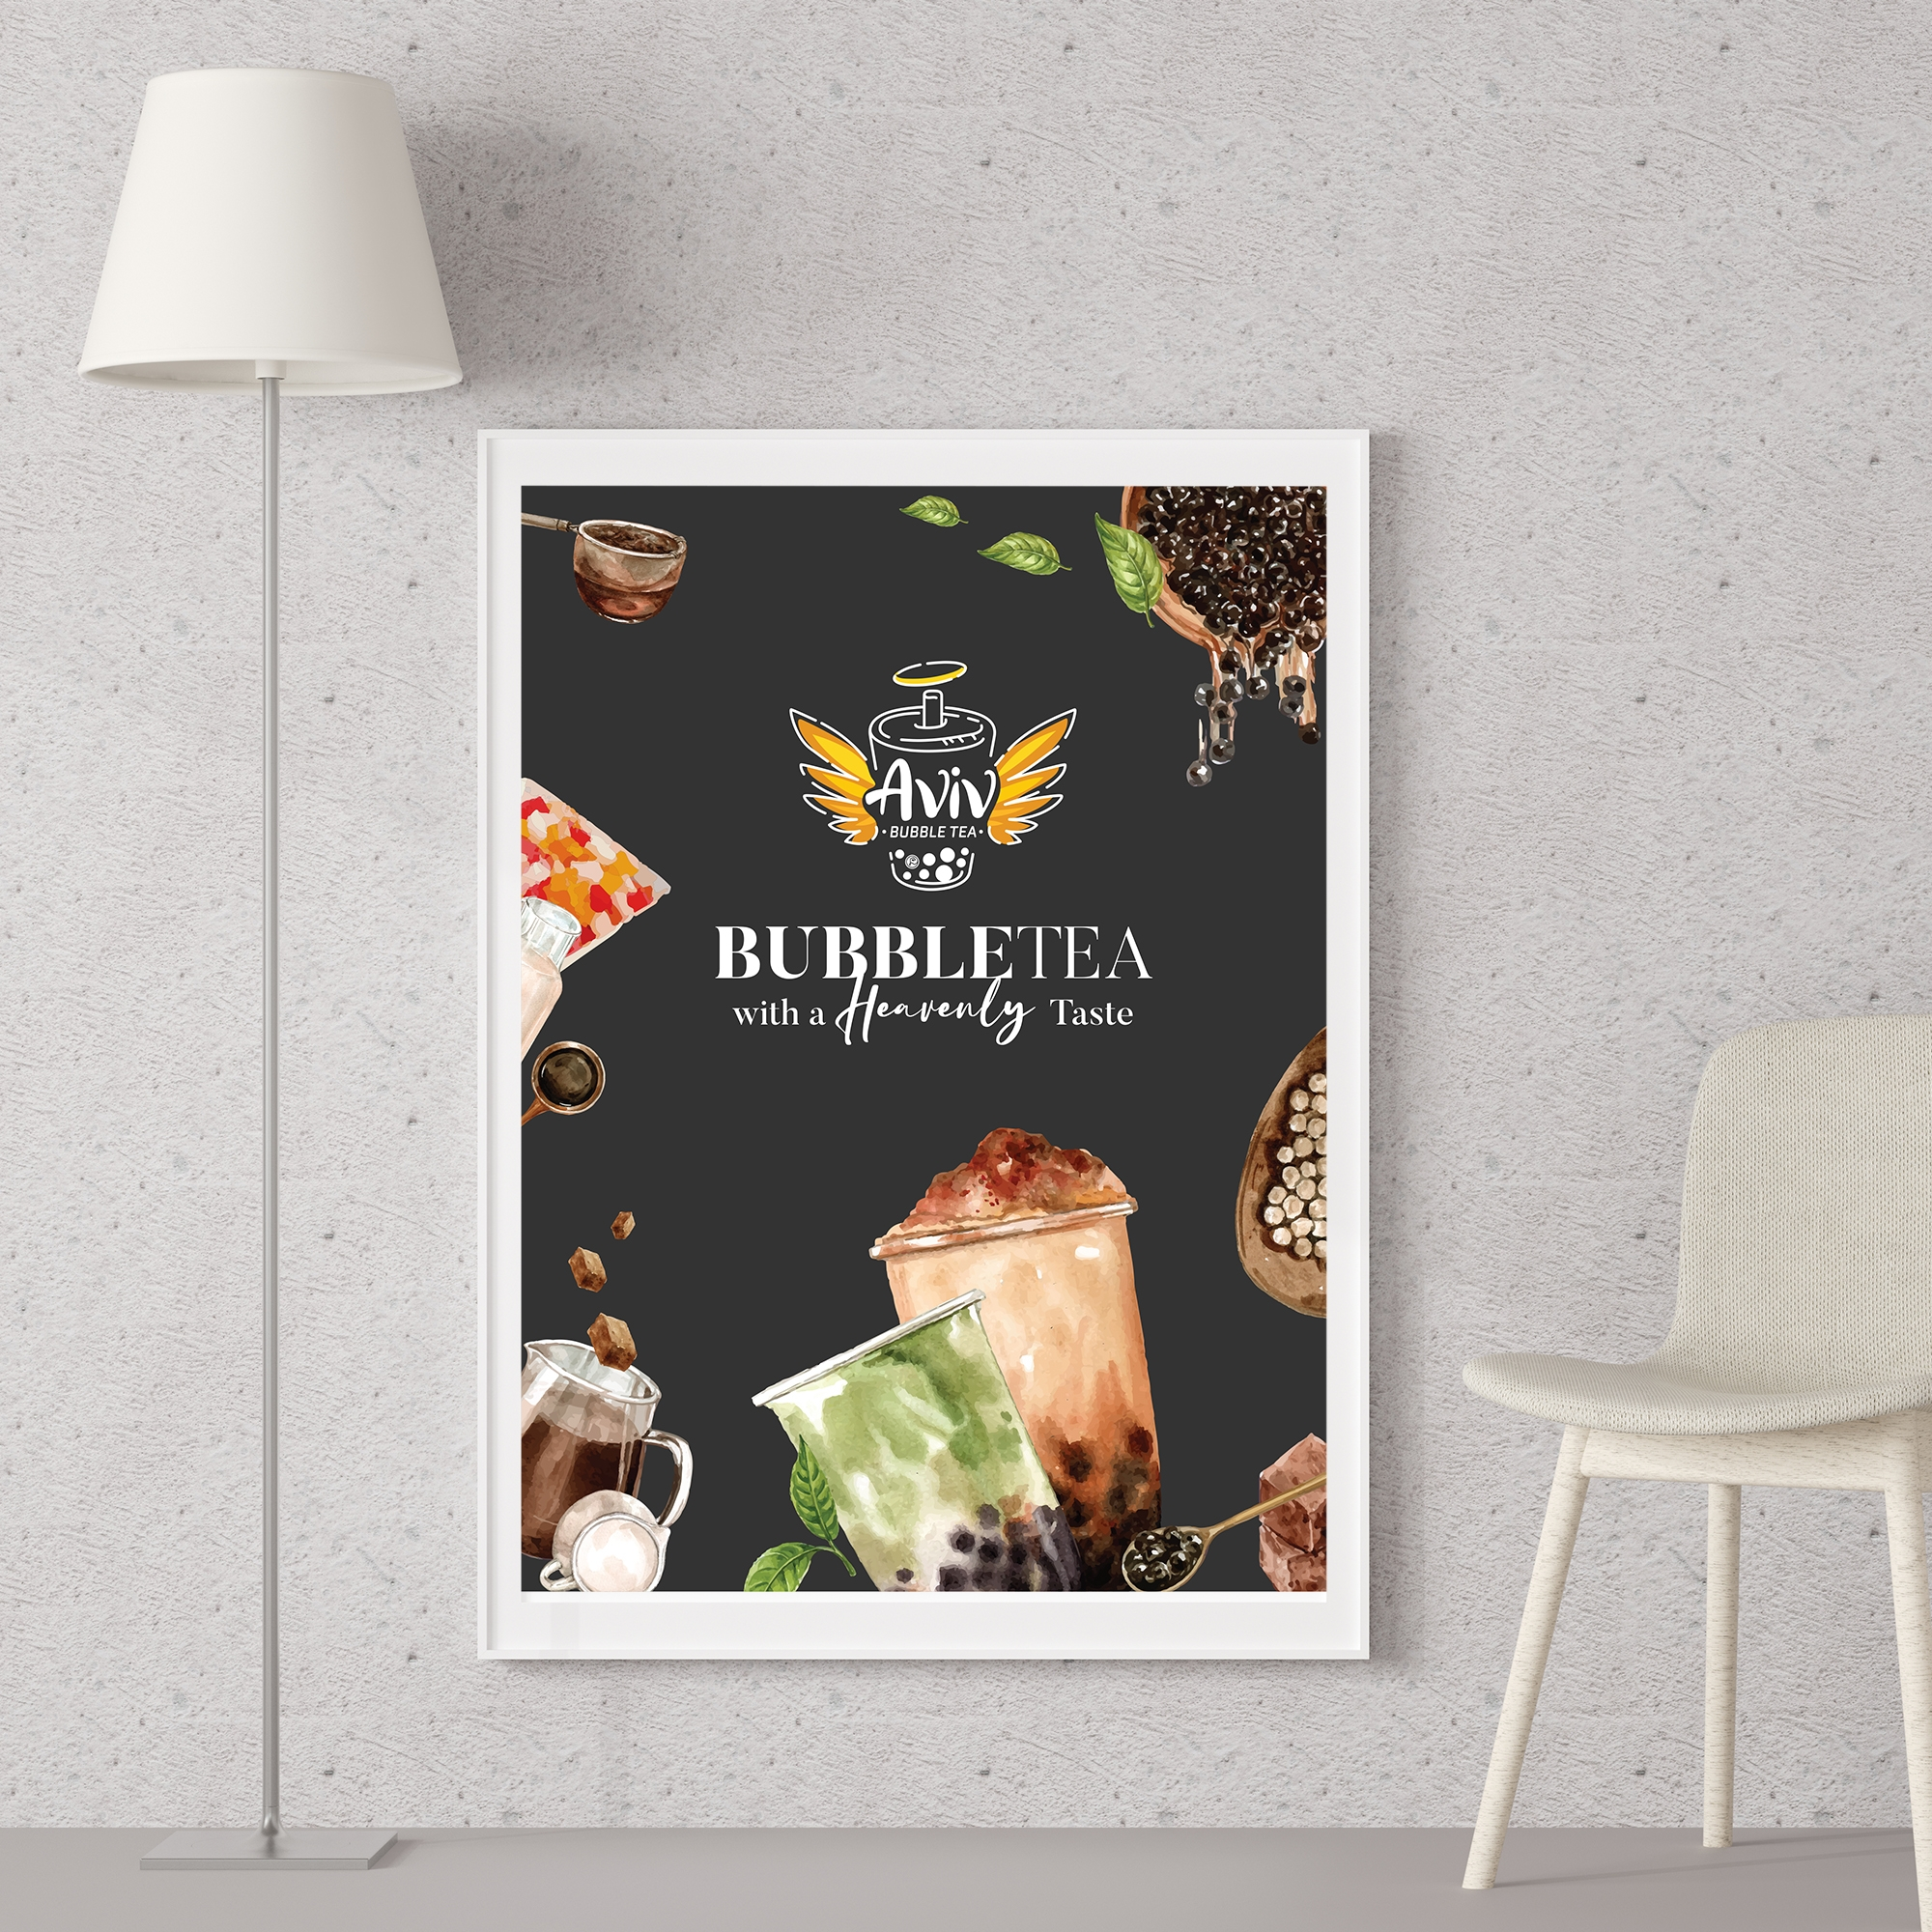 Logo and wall poster design done for a bubble tea cafe